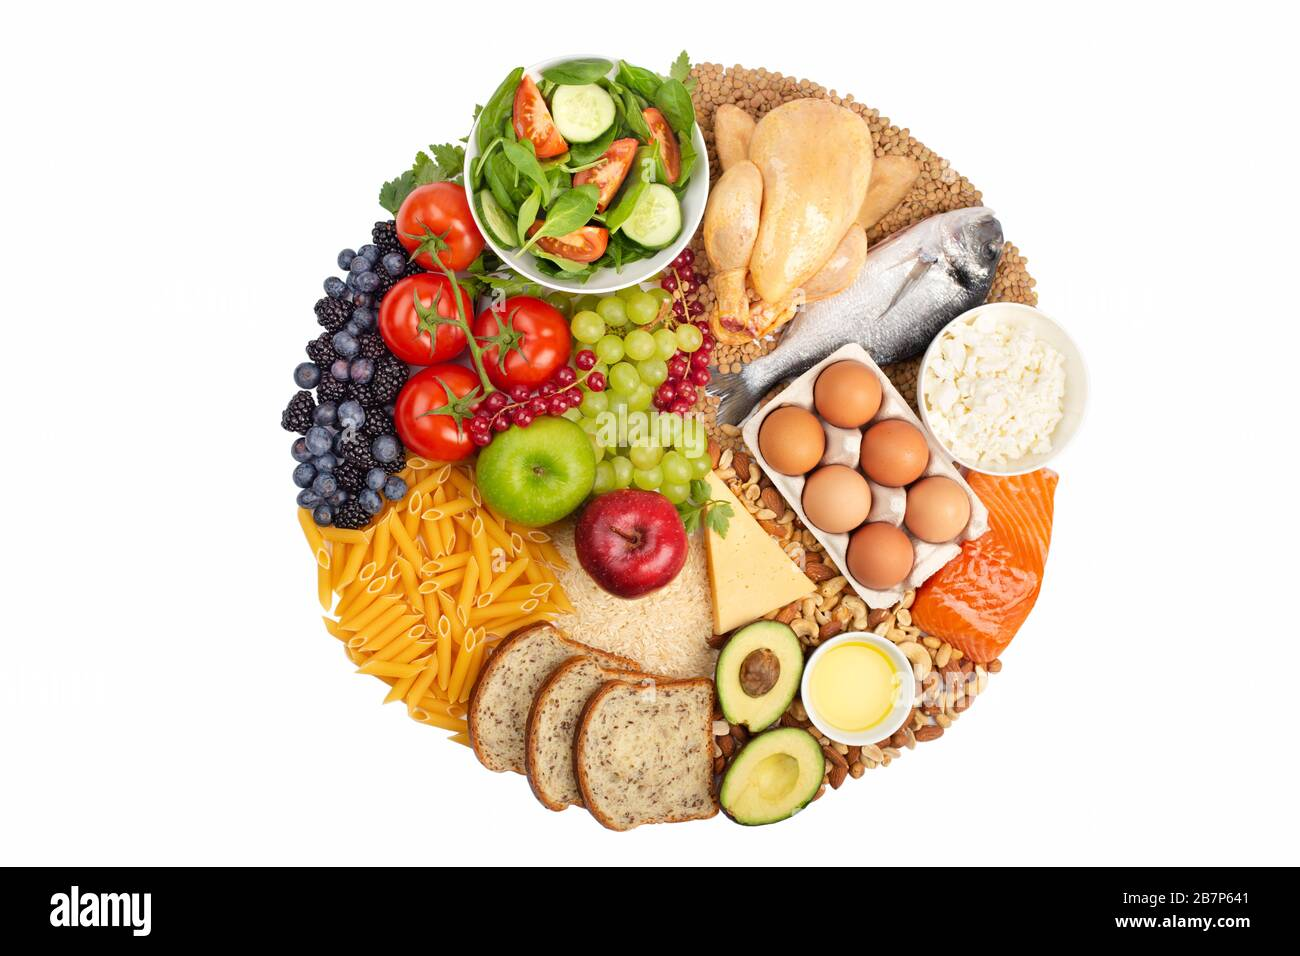 Food Pyramid Chart High Resolution Stock Photography And Images Alamy